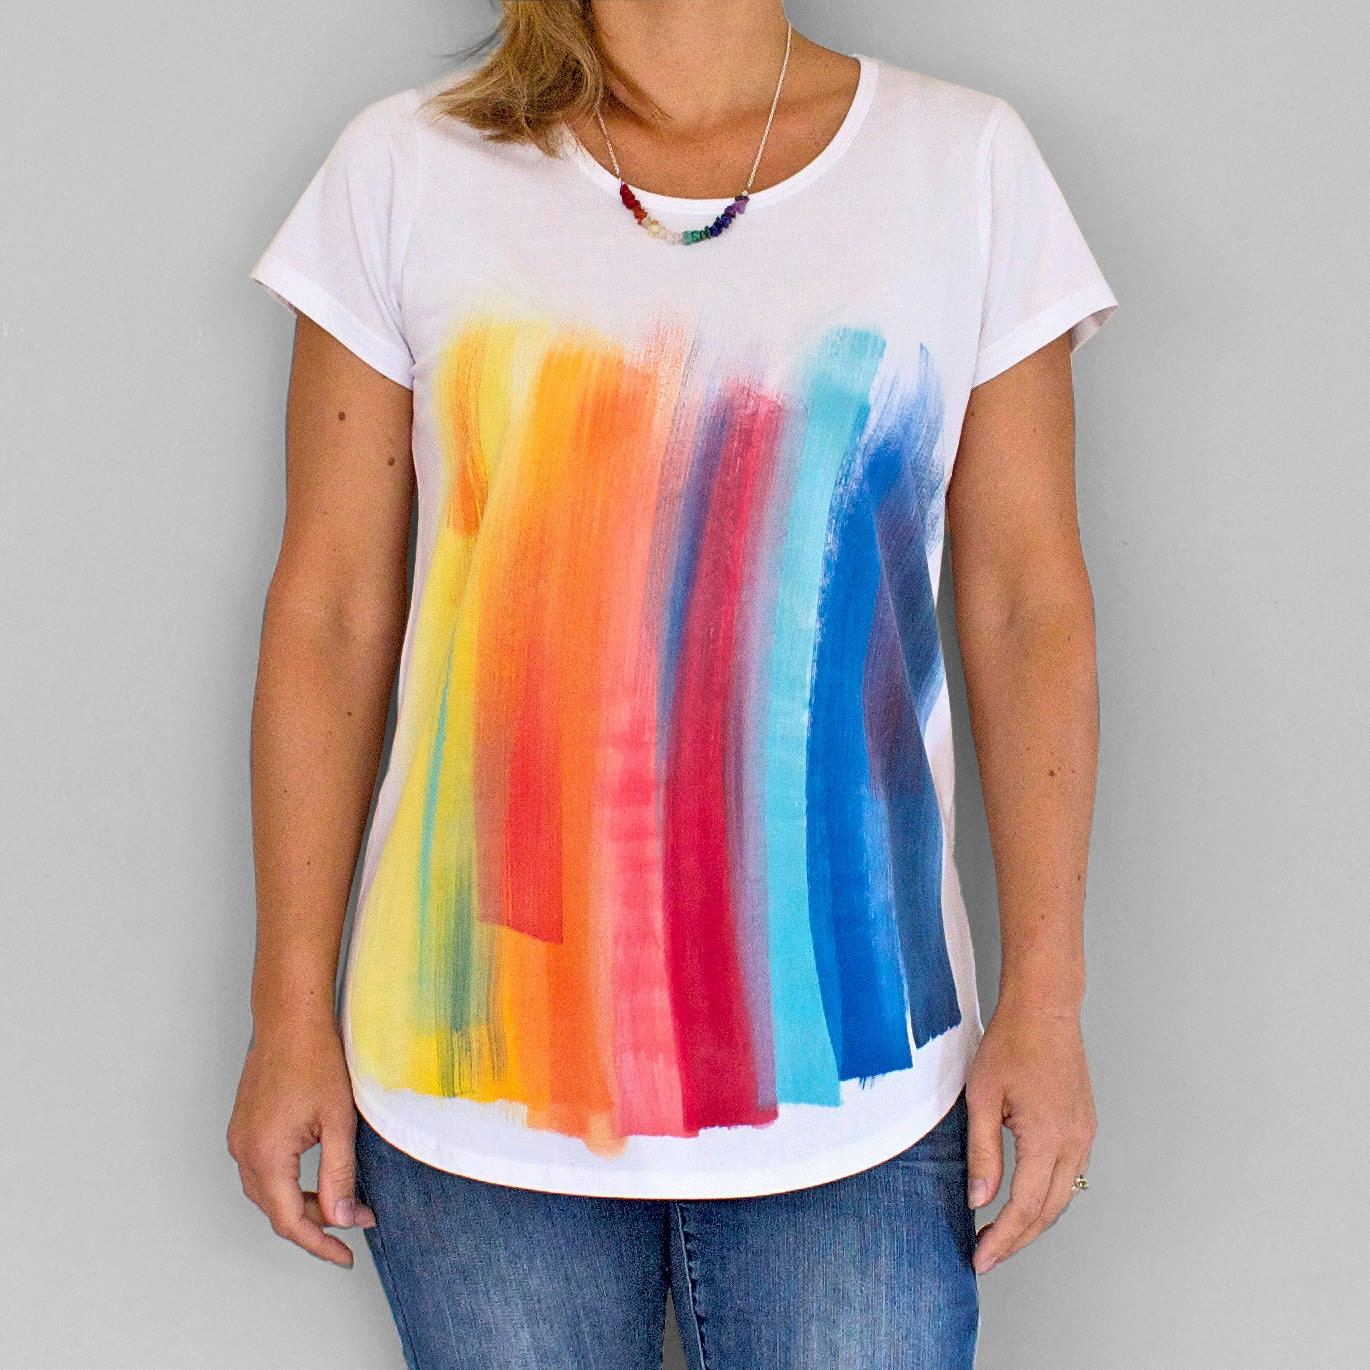 T shirt design quad cities - Rainbow T Shirt Women S T Shirt Hand Painted Tees